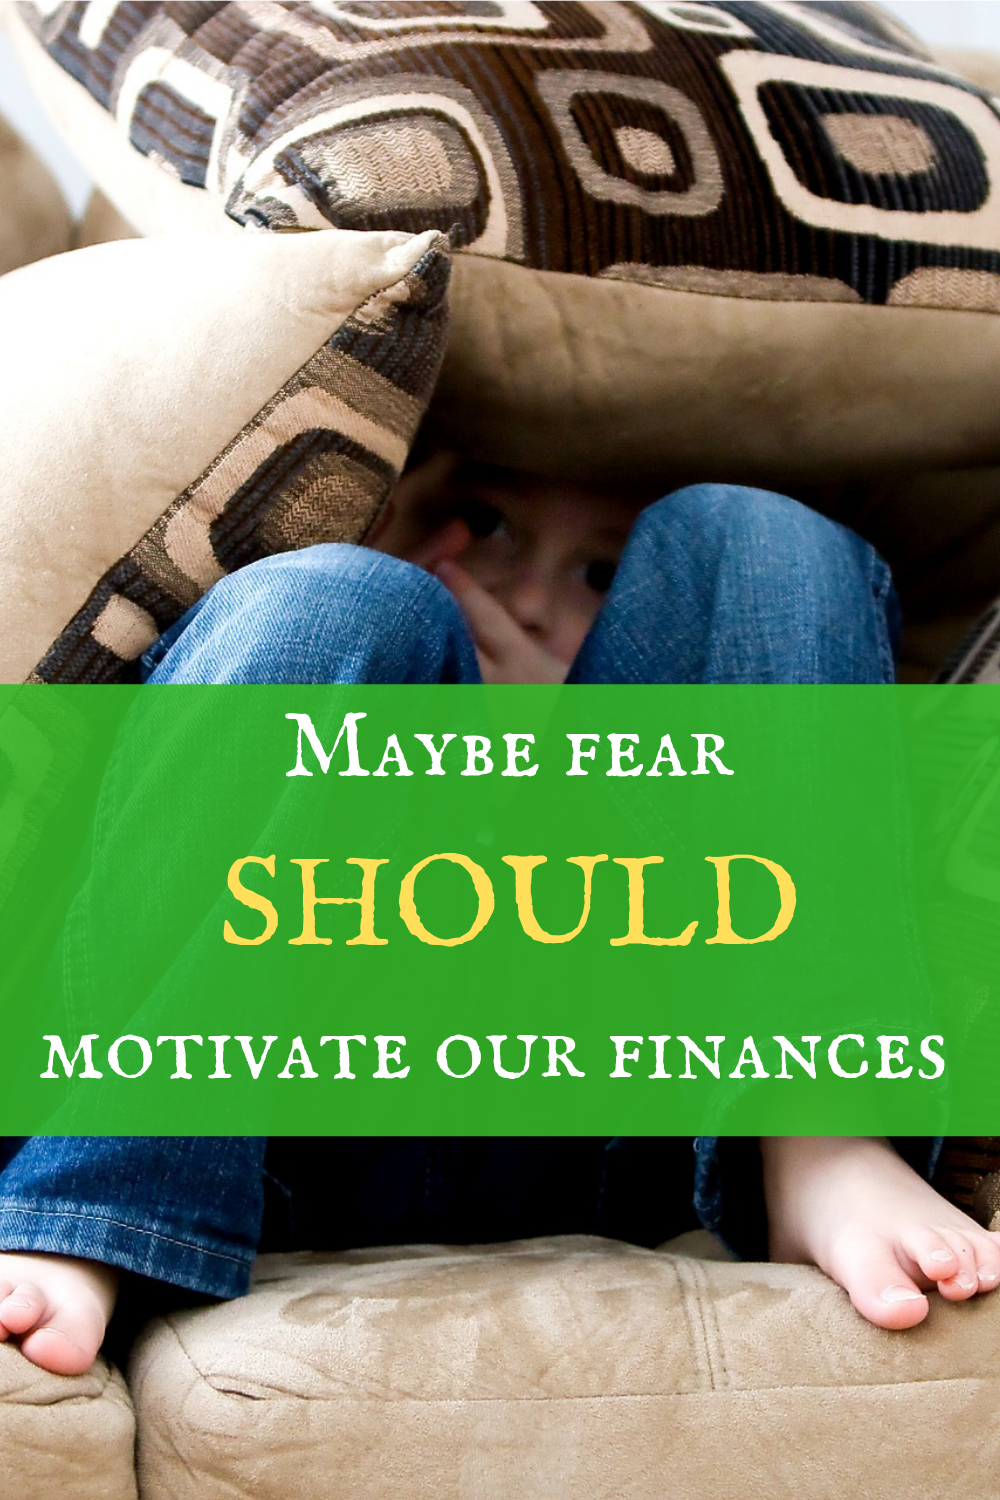 Personal finance could use a little fear!